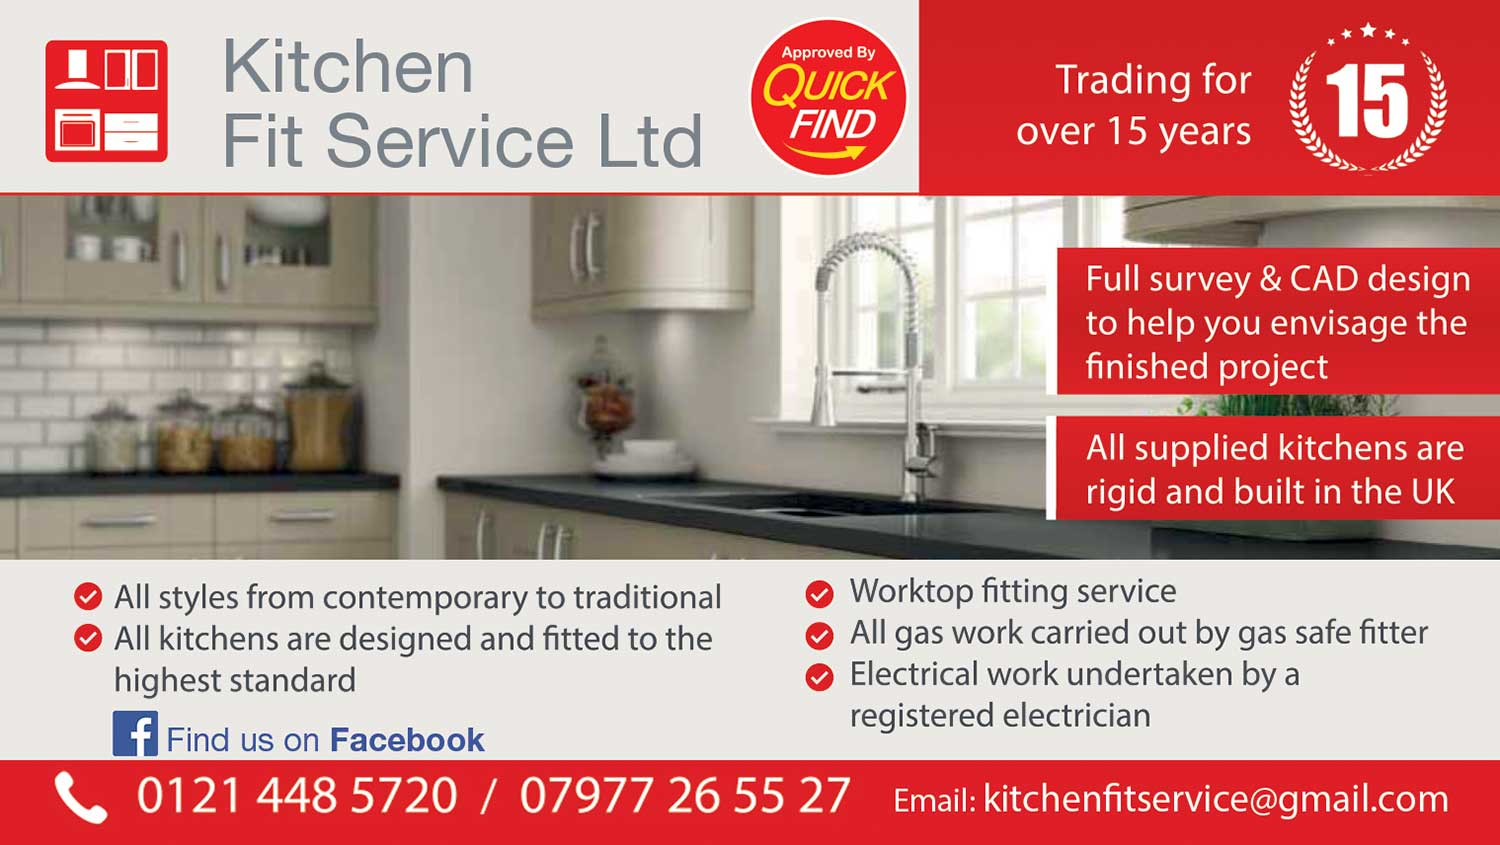 Kitchen Fit Service